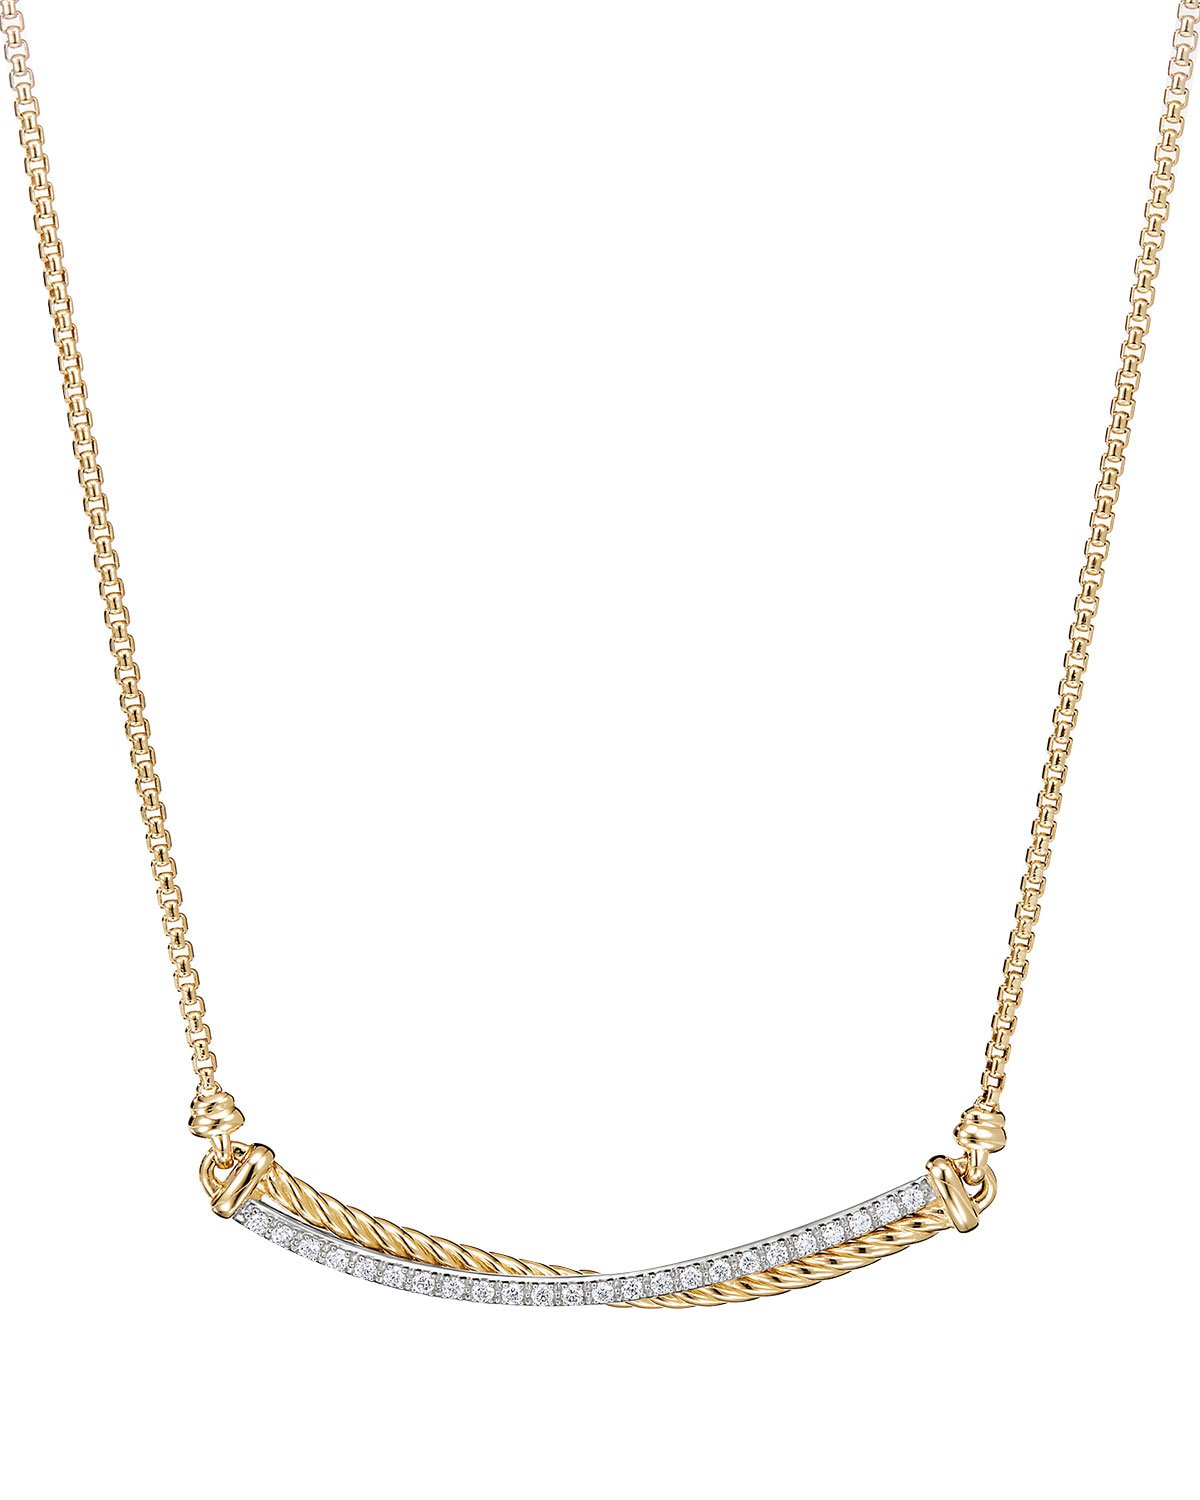 Crossover 18k Gold Bar Necklace With Diamonds 16 17